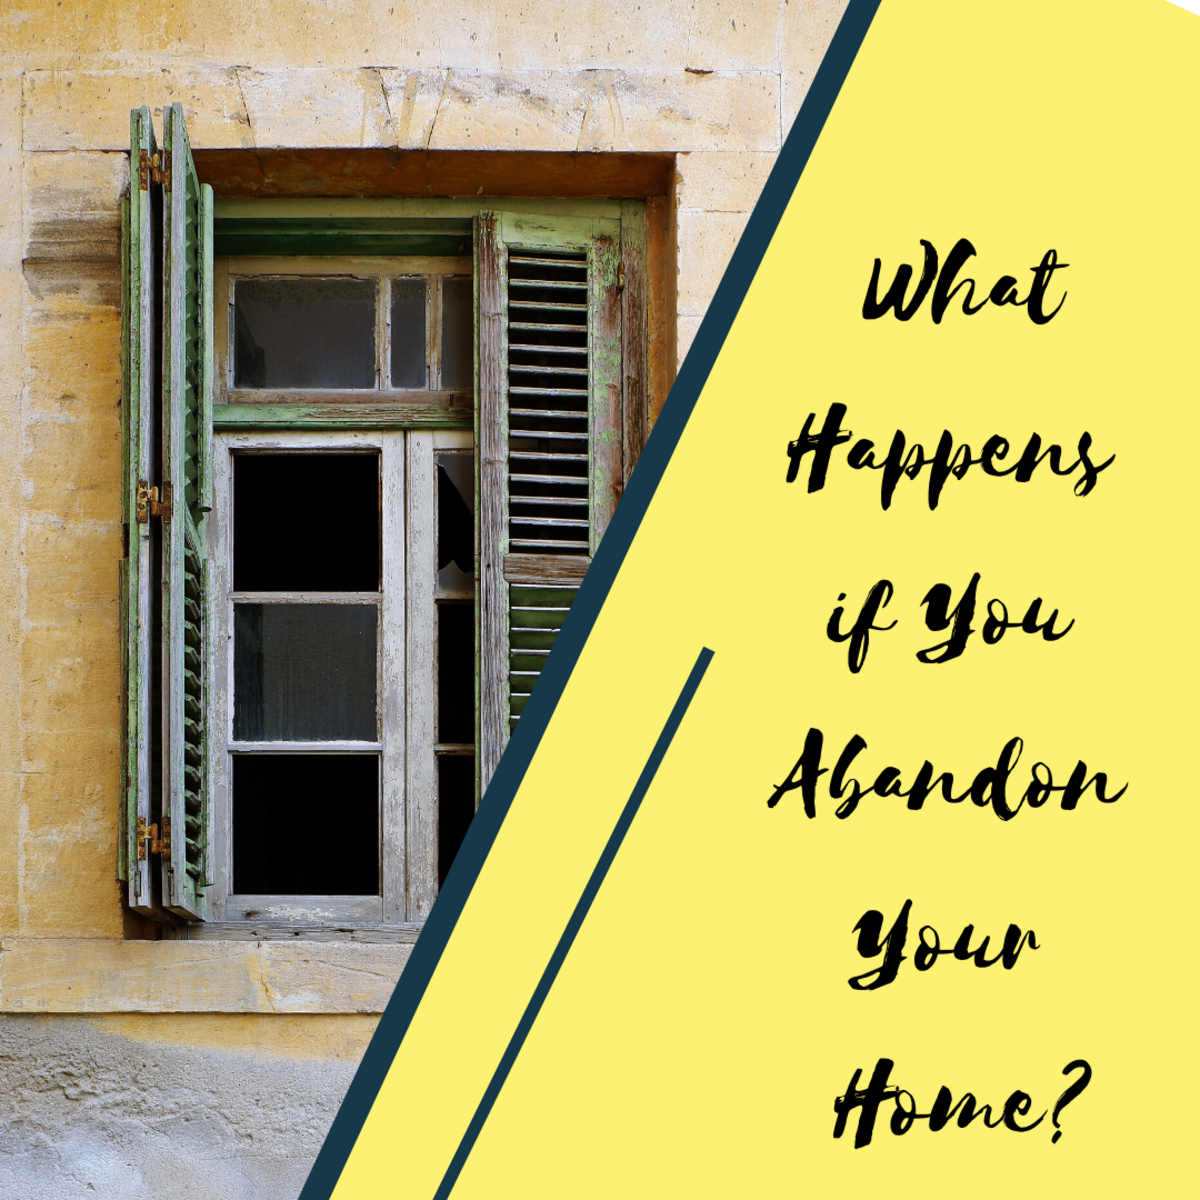 Foreclosing on or abandoning your home can be a difficult time in life. Here's what to do if you need to make this hard decision.